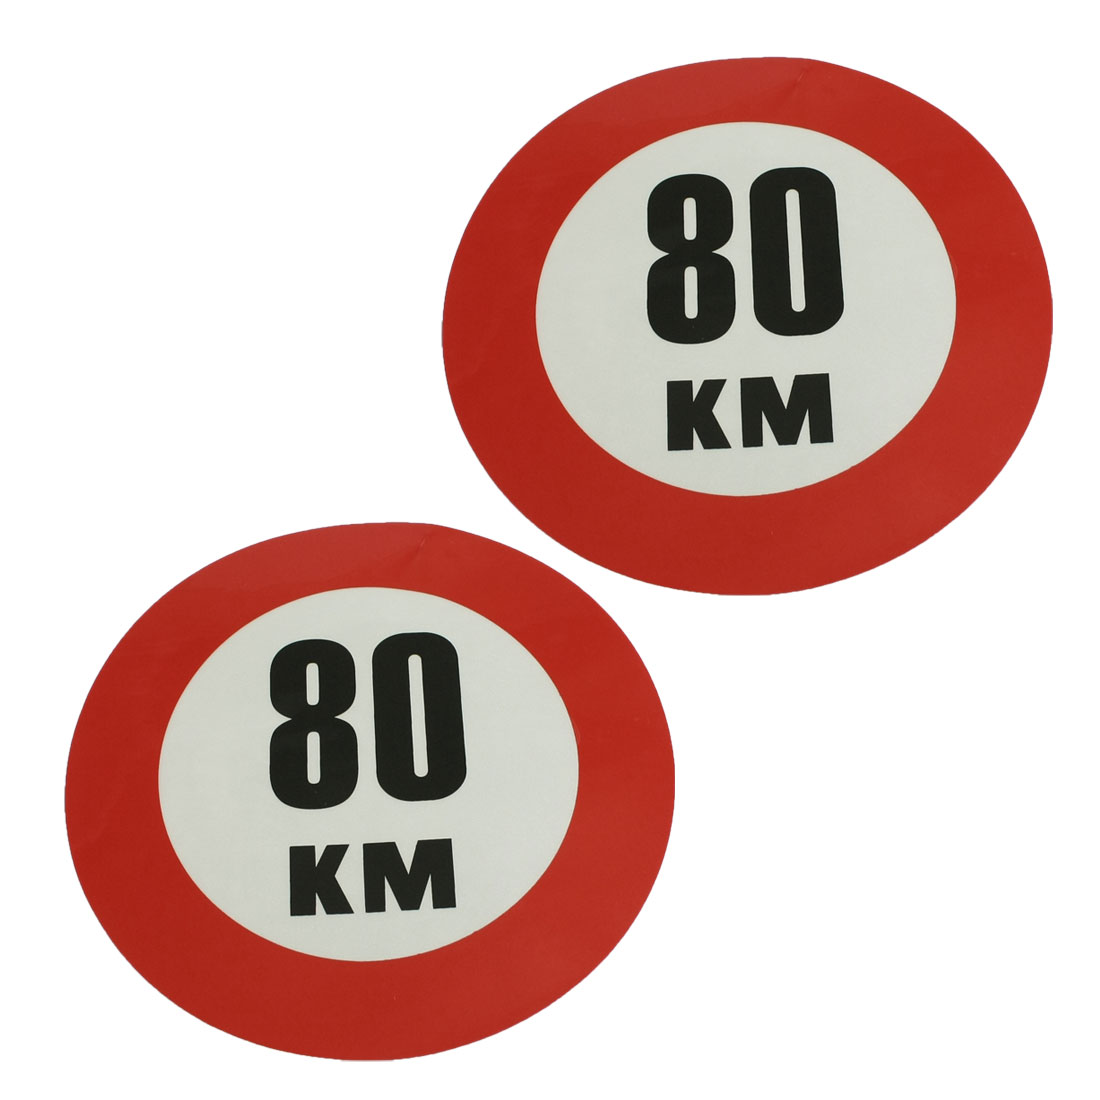 Vehicle Car Window Reflective 80 KM Speed Limit Sign Sticker Decal 2 Pcs